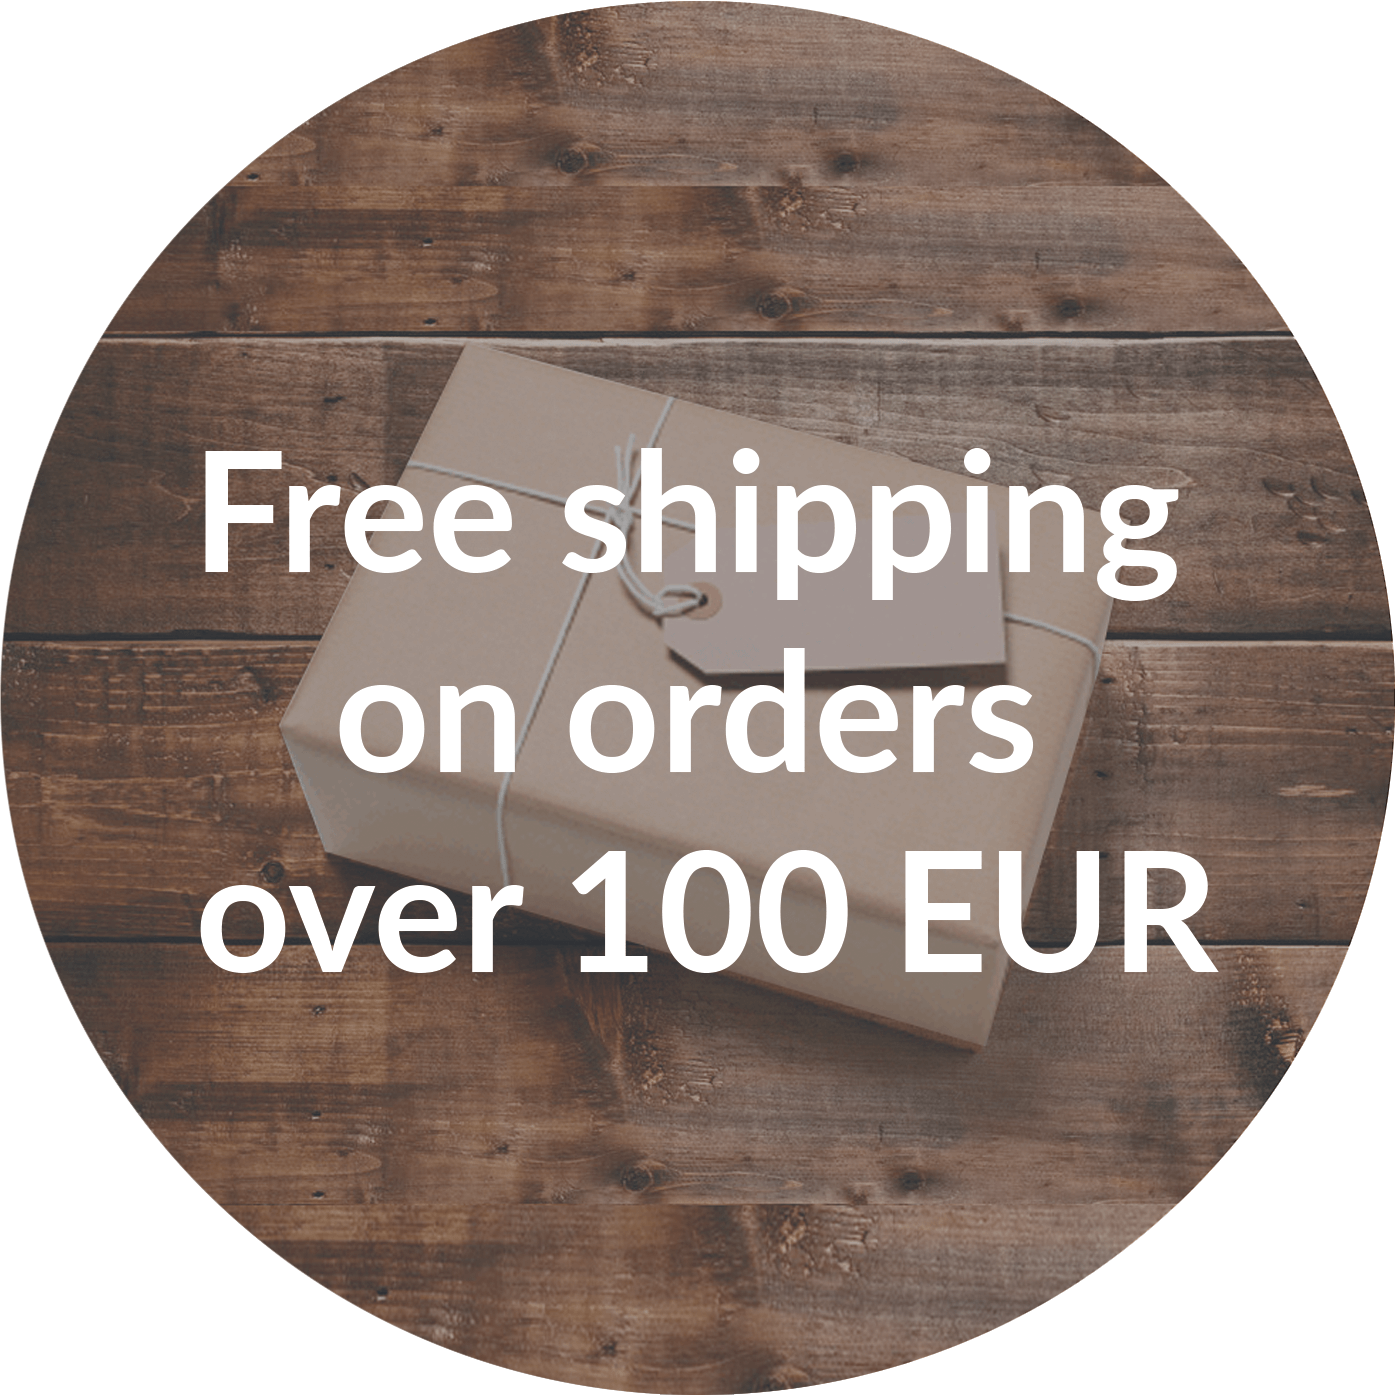 Free shipping on orders over 100 EUR